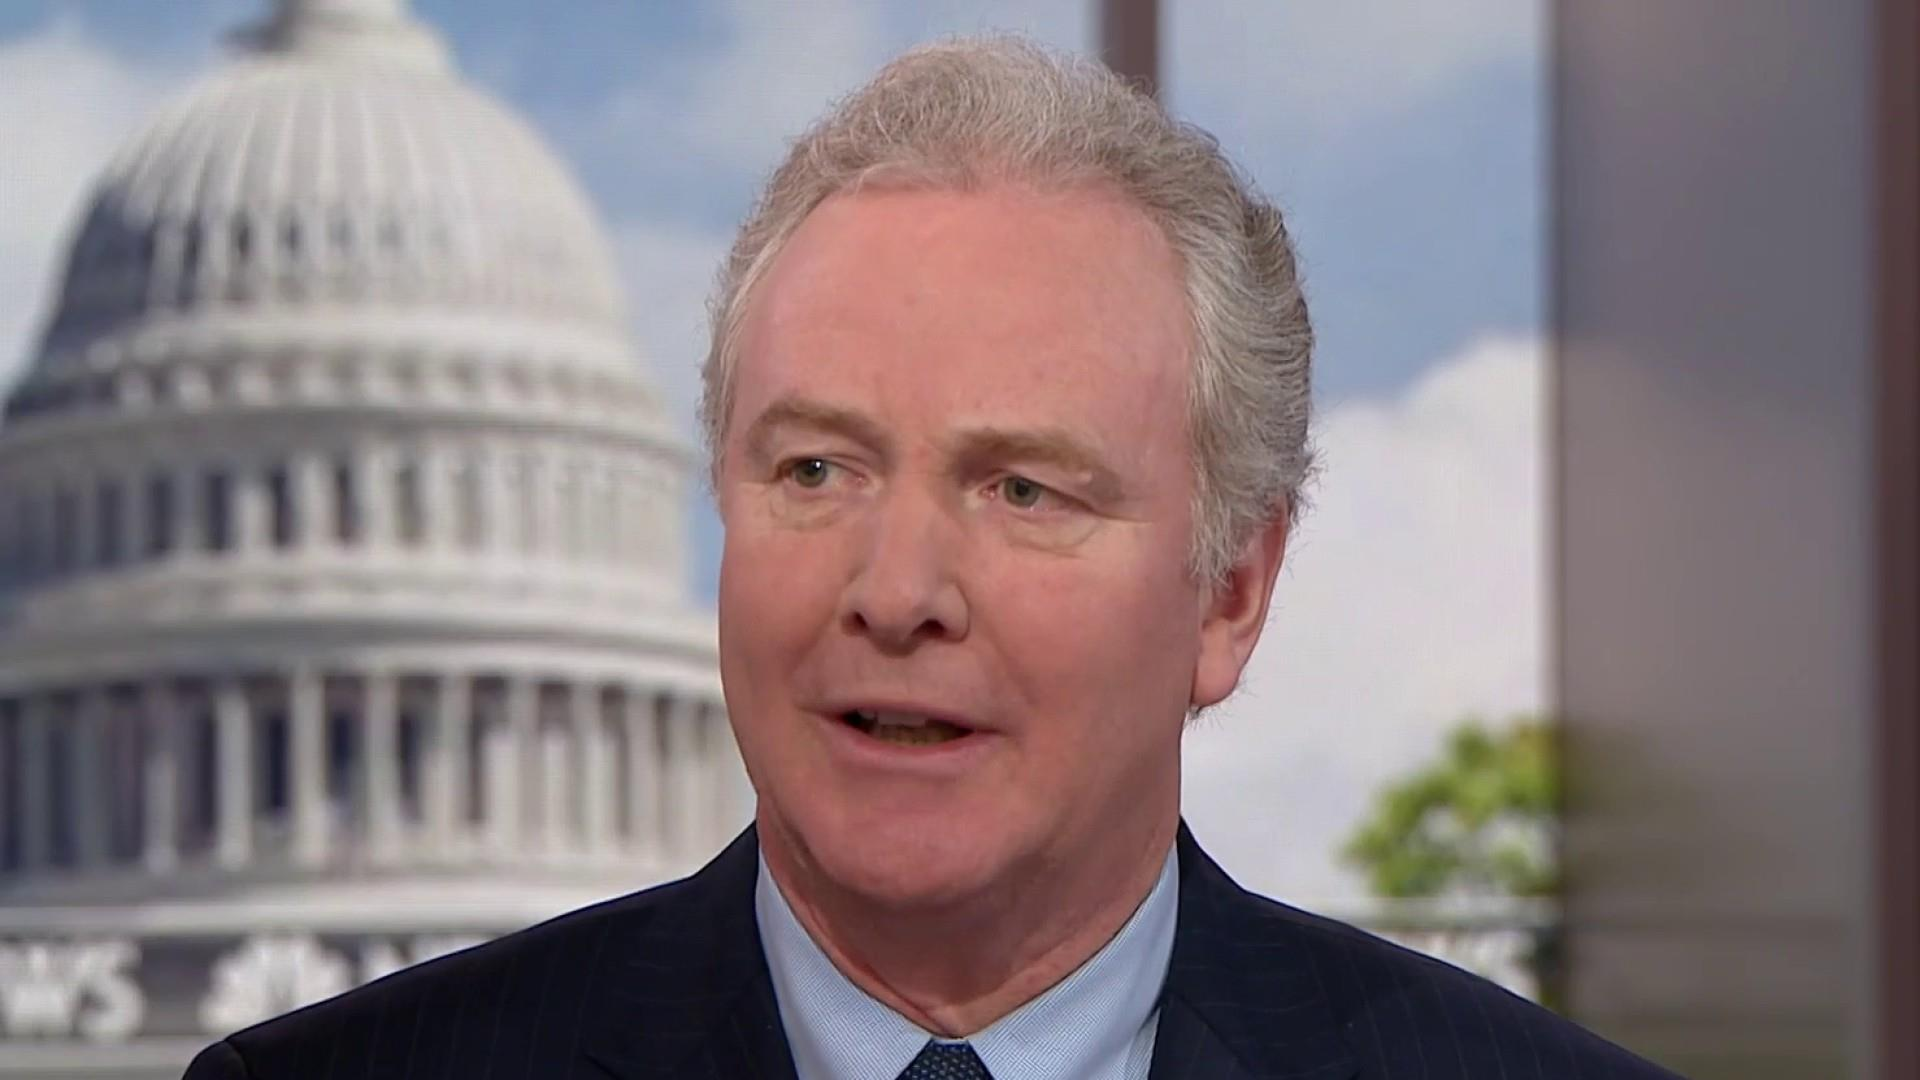 Sen. Van Hollen: John Bolton is 'a skilled bureaucratic inside fighter'